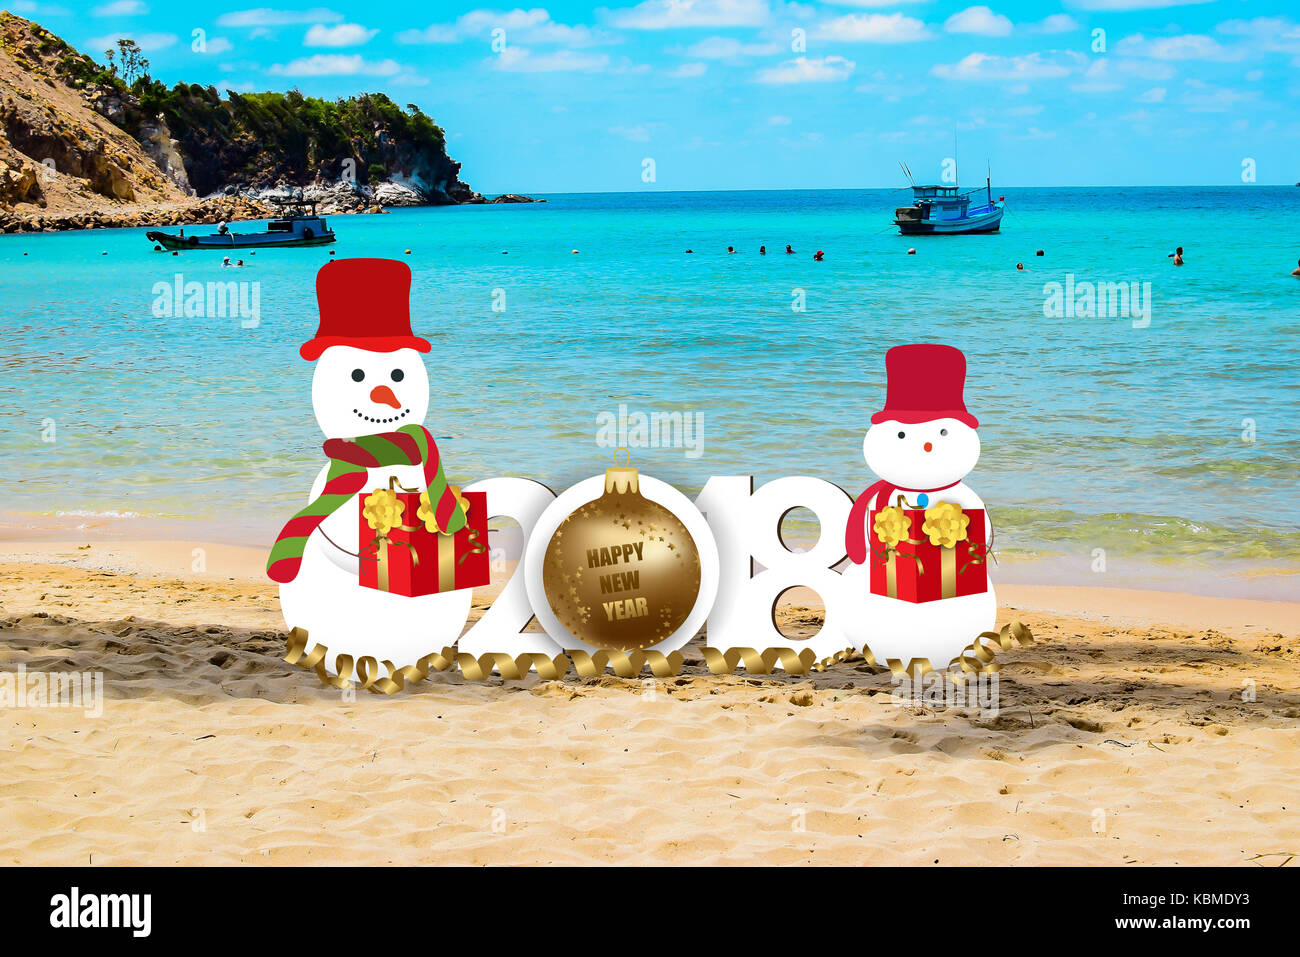 happy new year for 2018 with snowman on the beach background